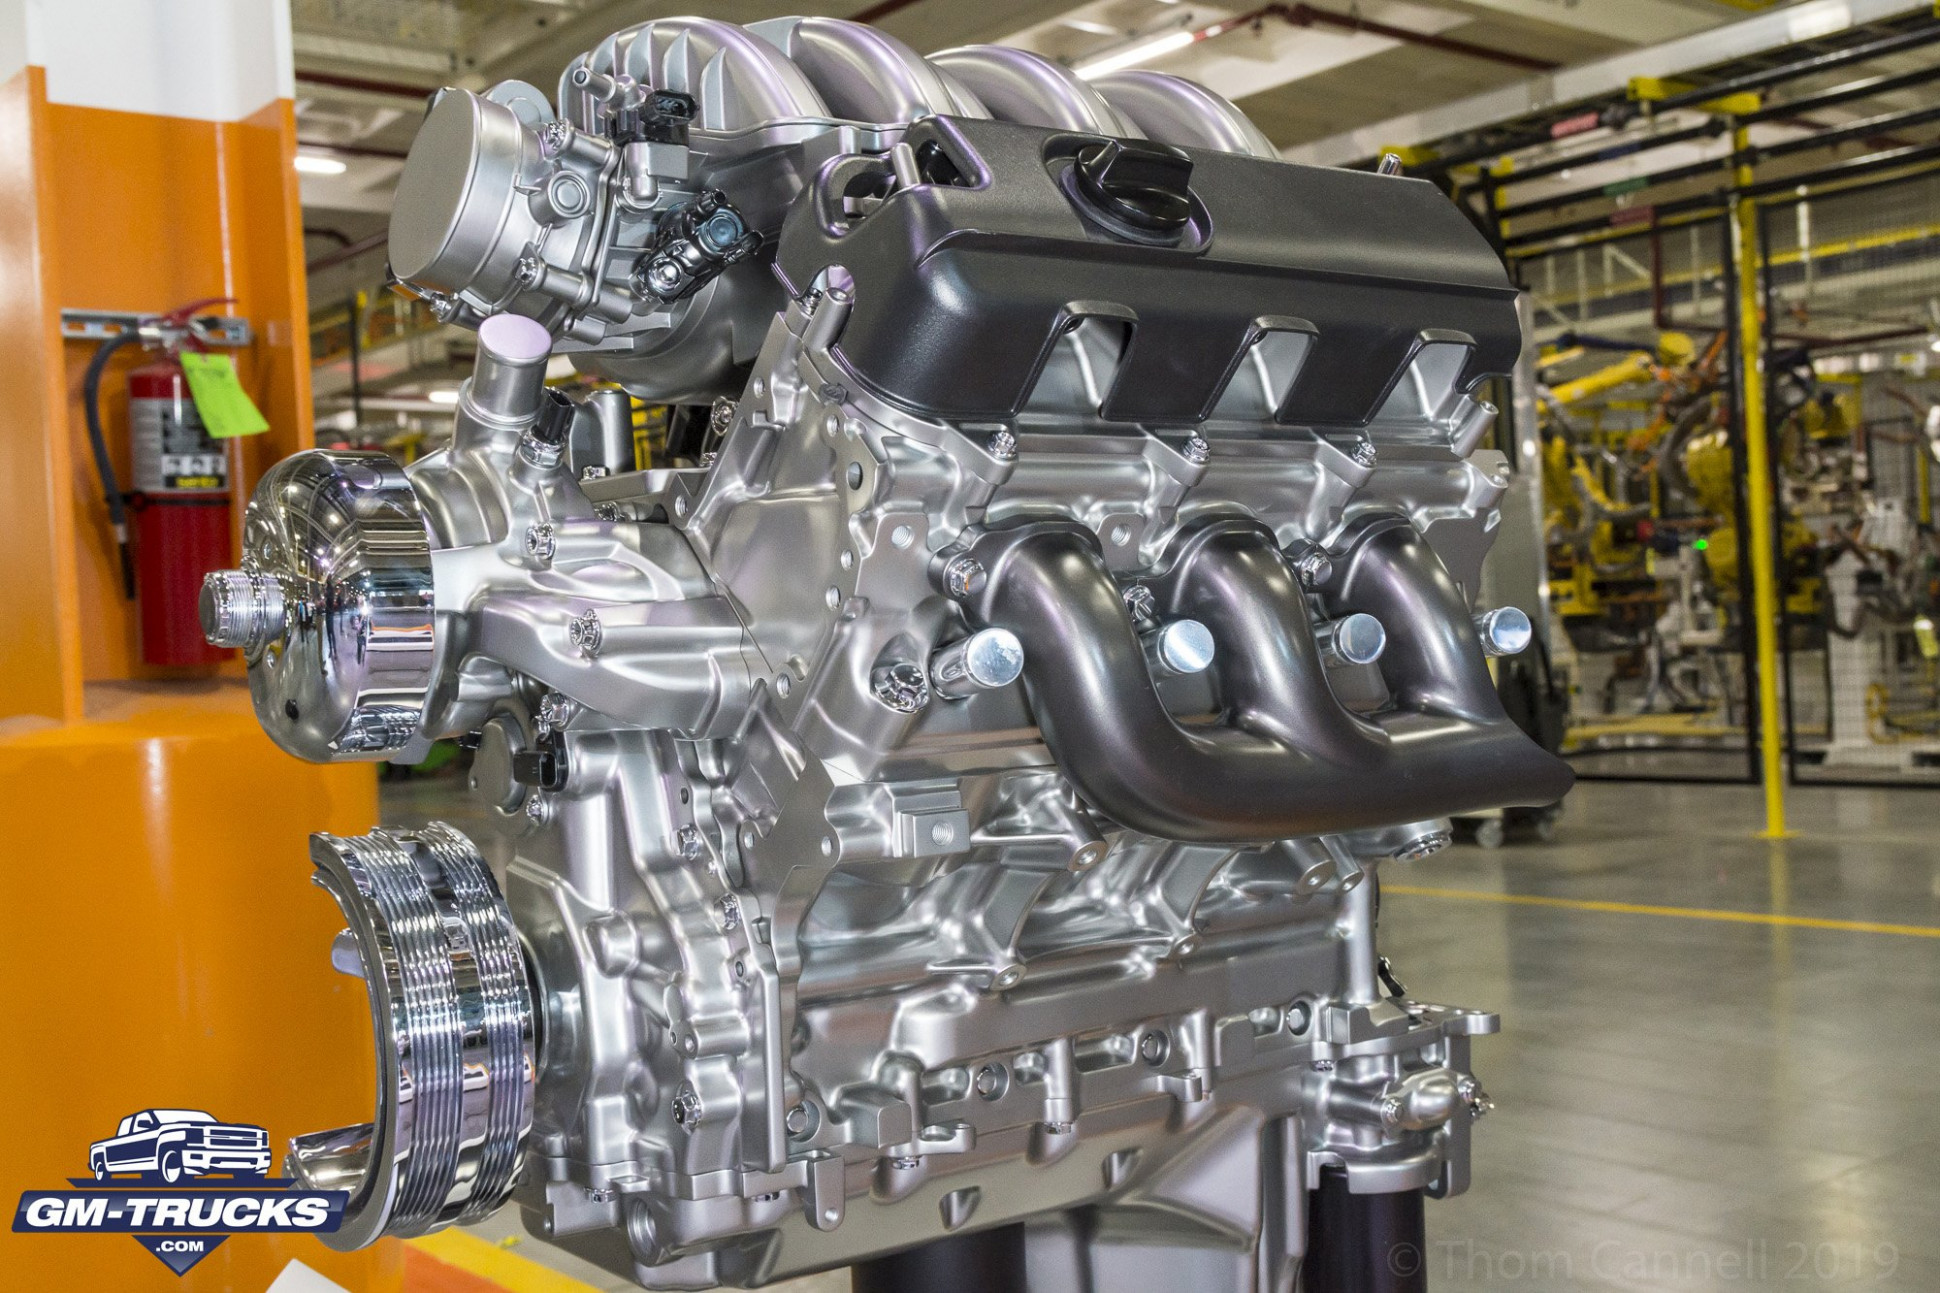 Specs and Review 2022 Gm 6.6 Gas